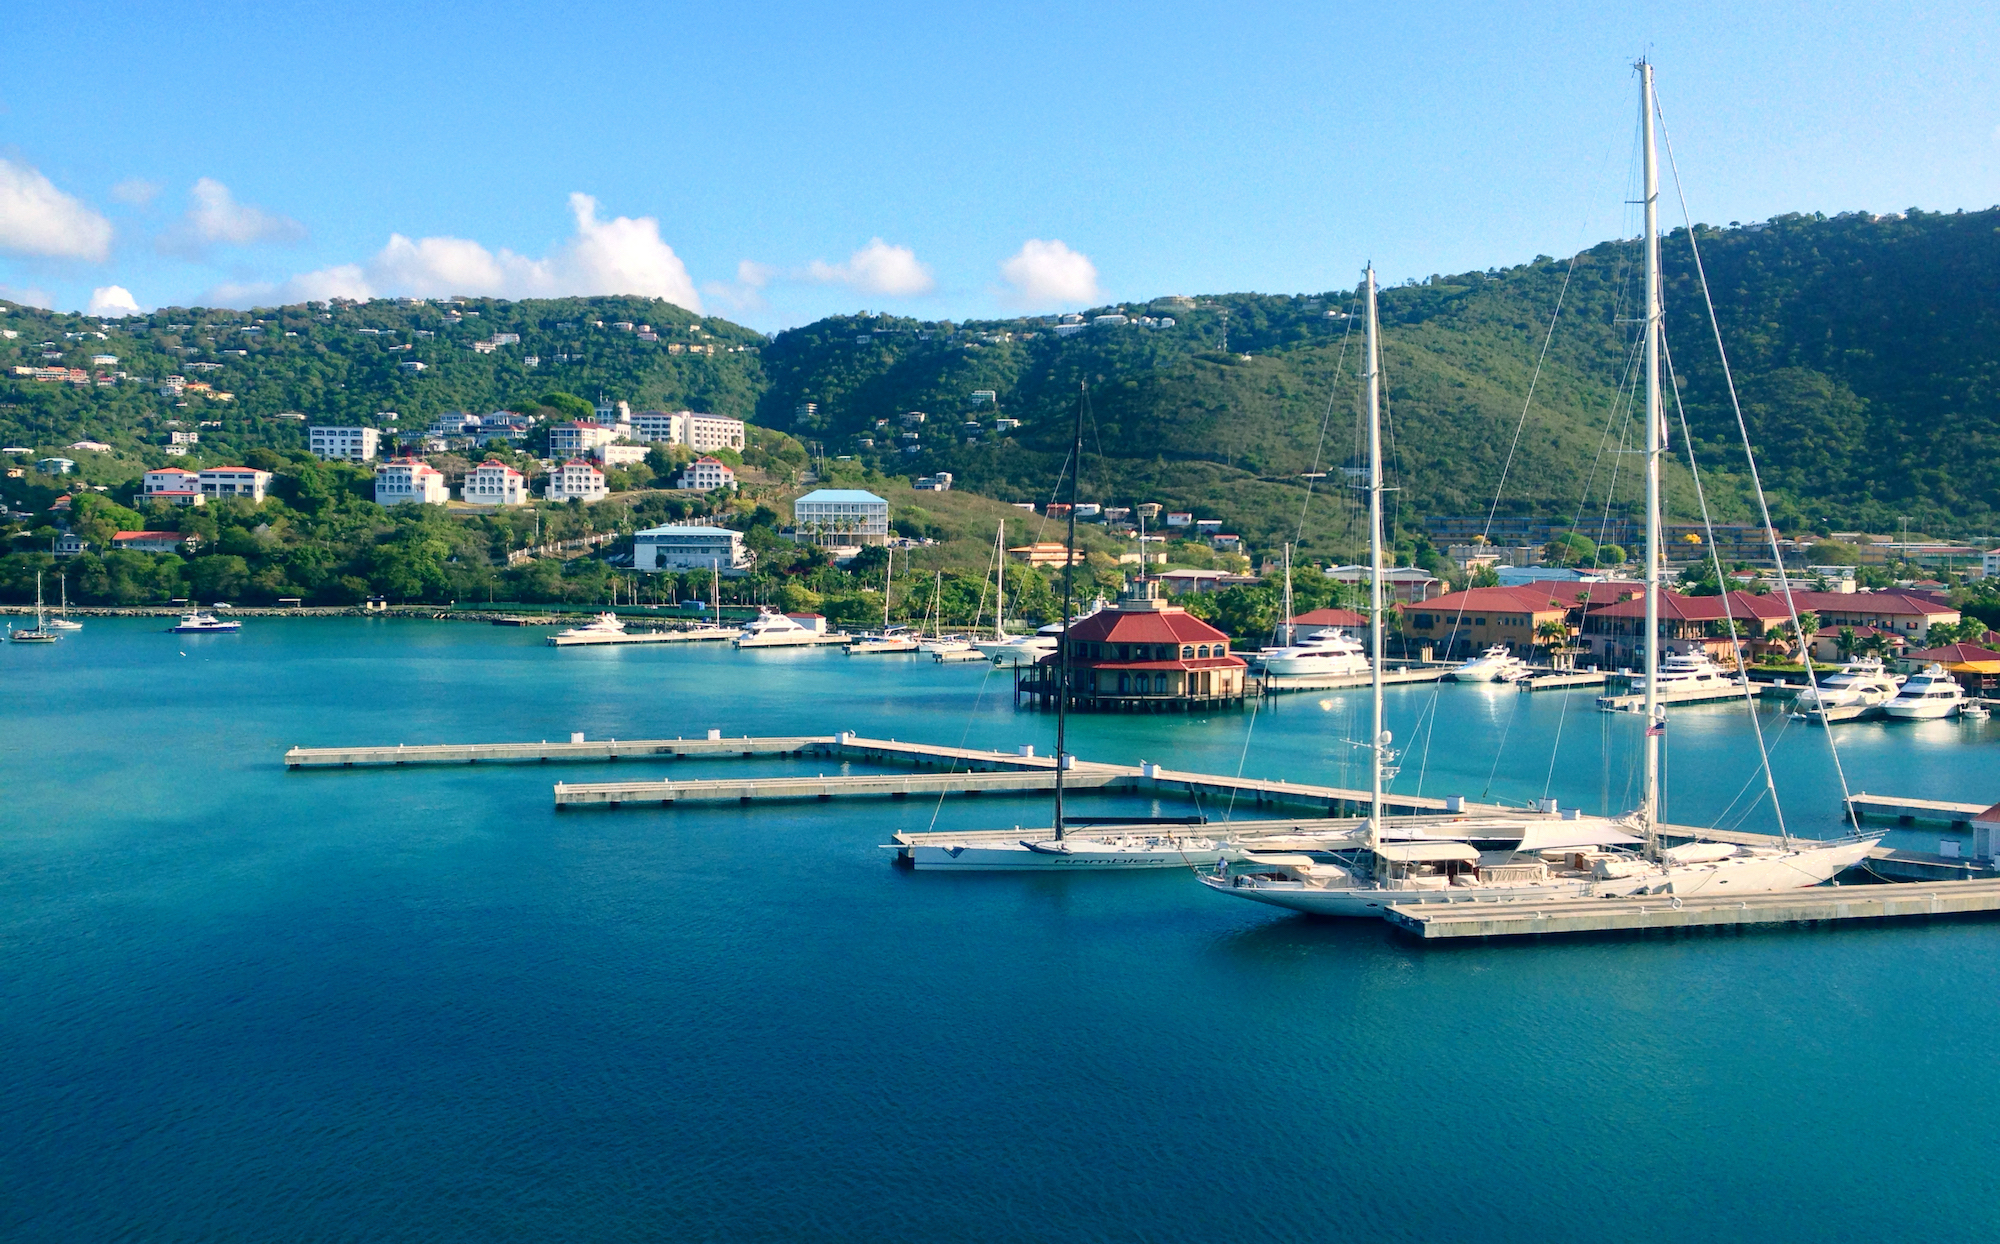 st-thomas-bay-view.jpg